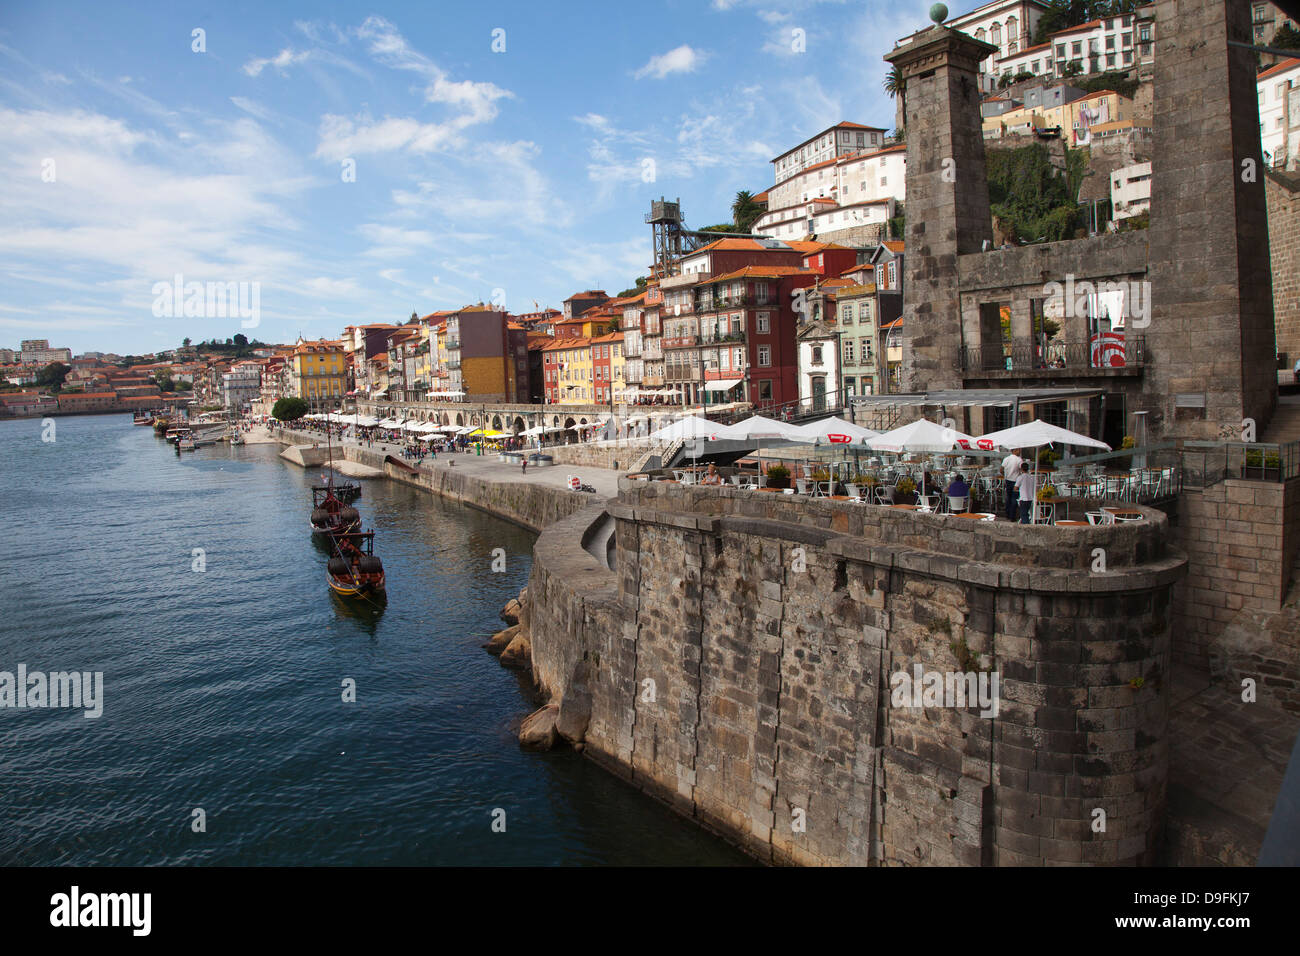 River Douro and old town of Ribeira, Porto, Portugal - Stock Image